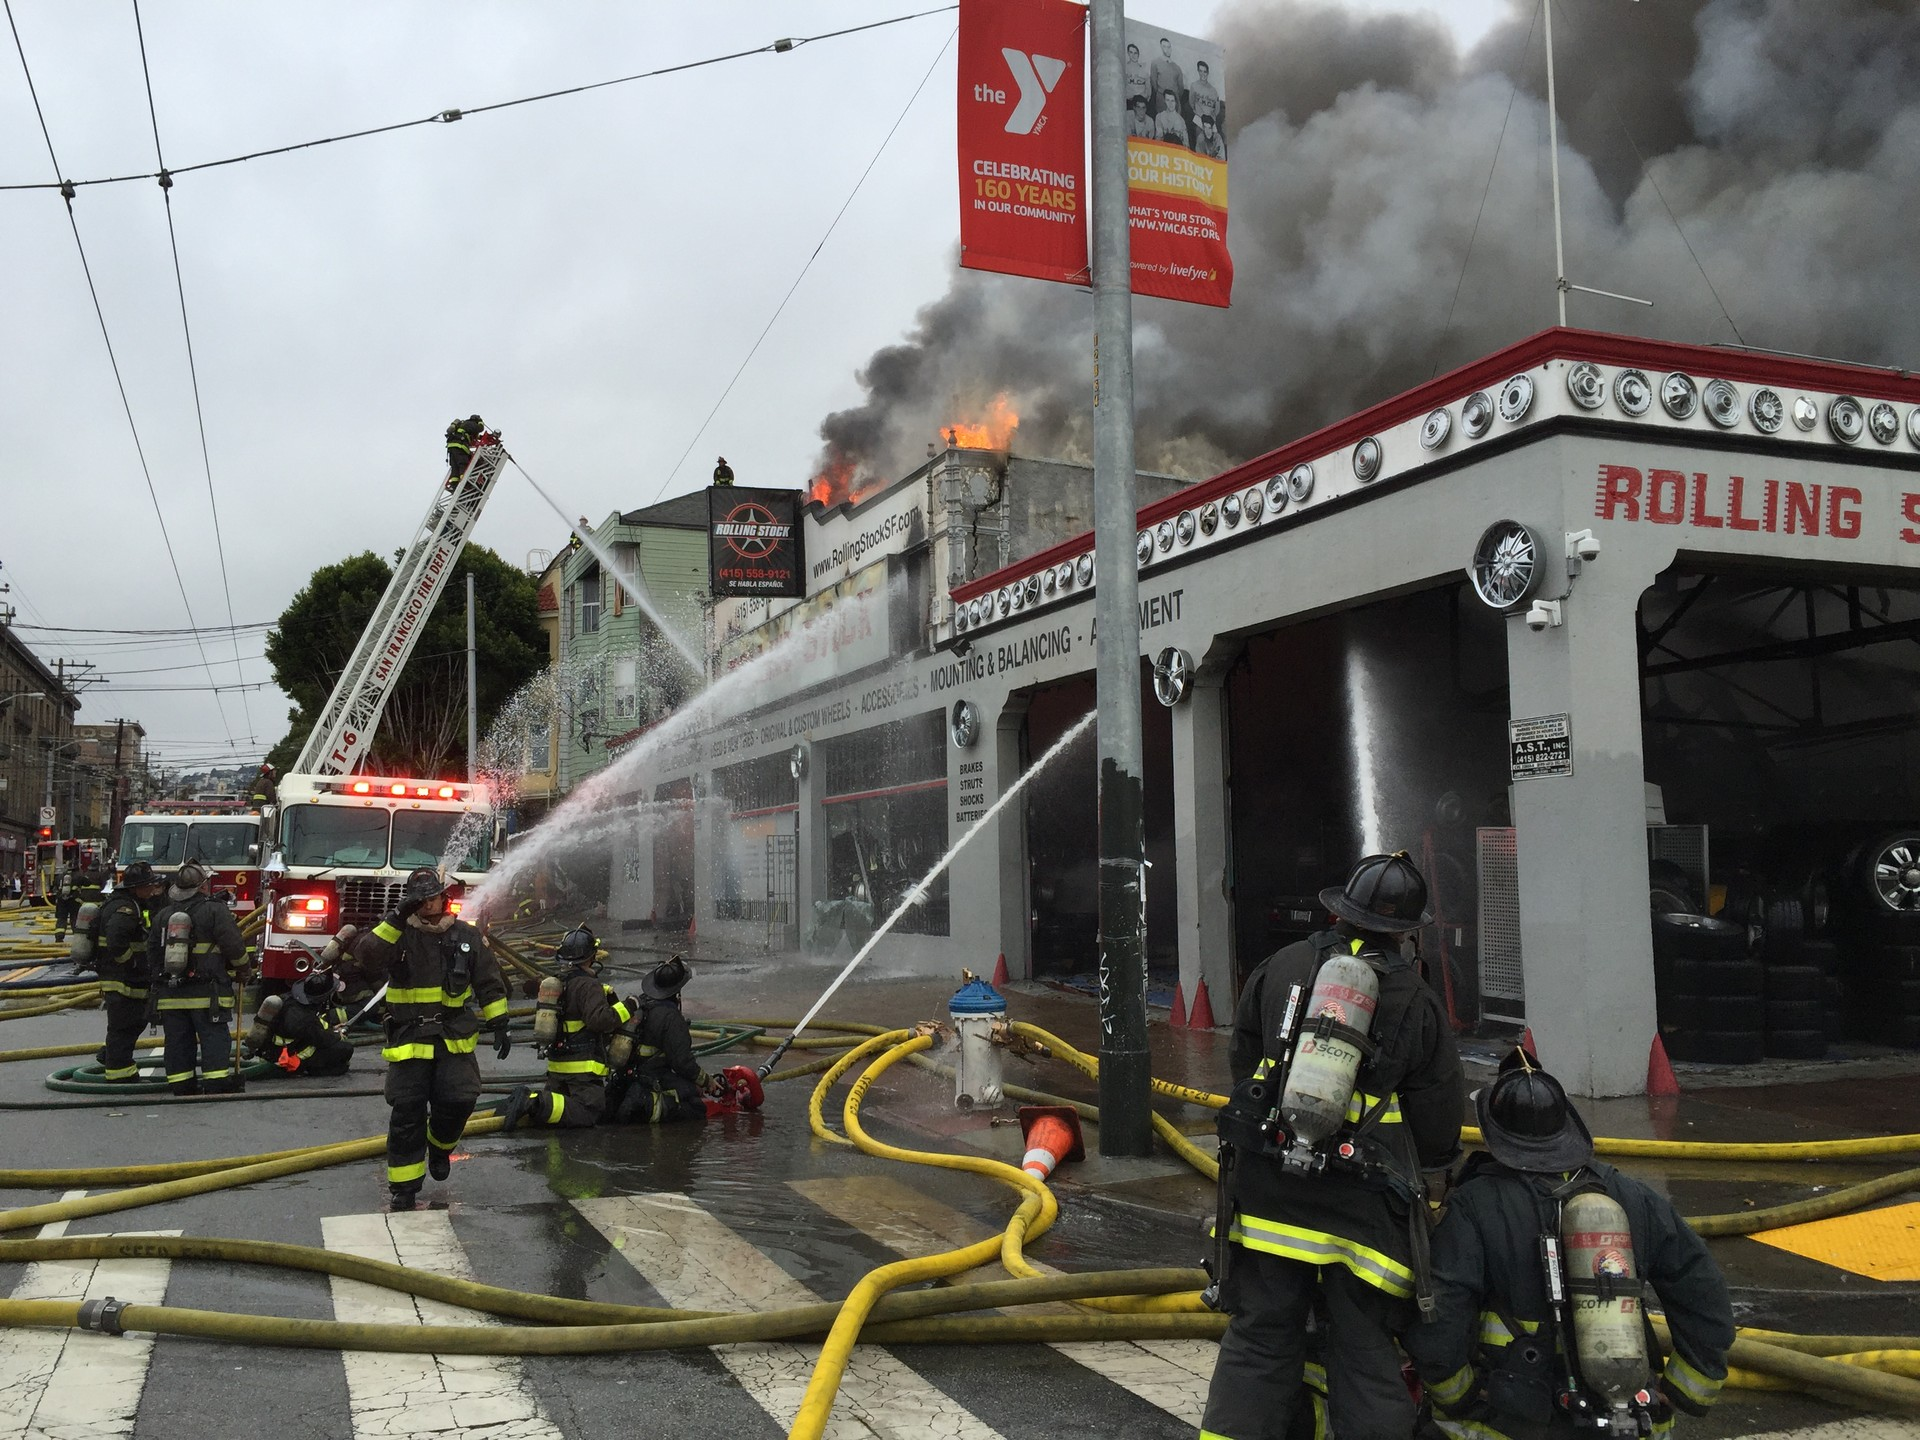 S F Fire Officials Try To Quell Concerns About Blazes In Mission